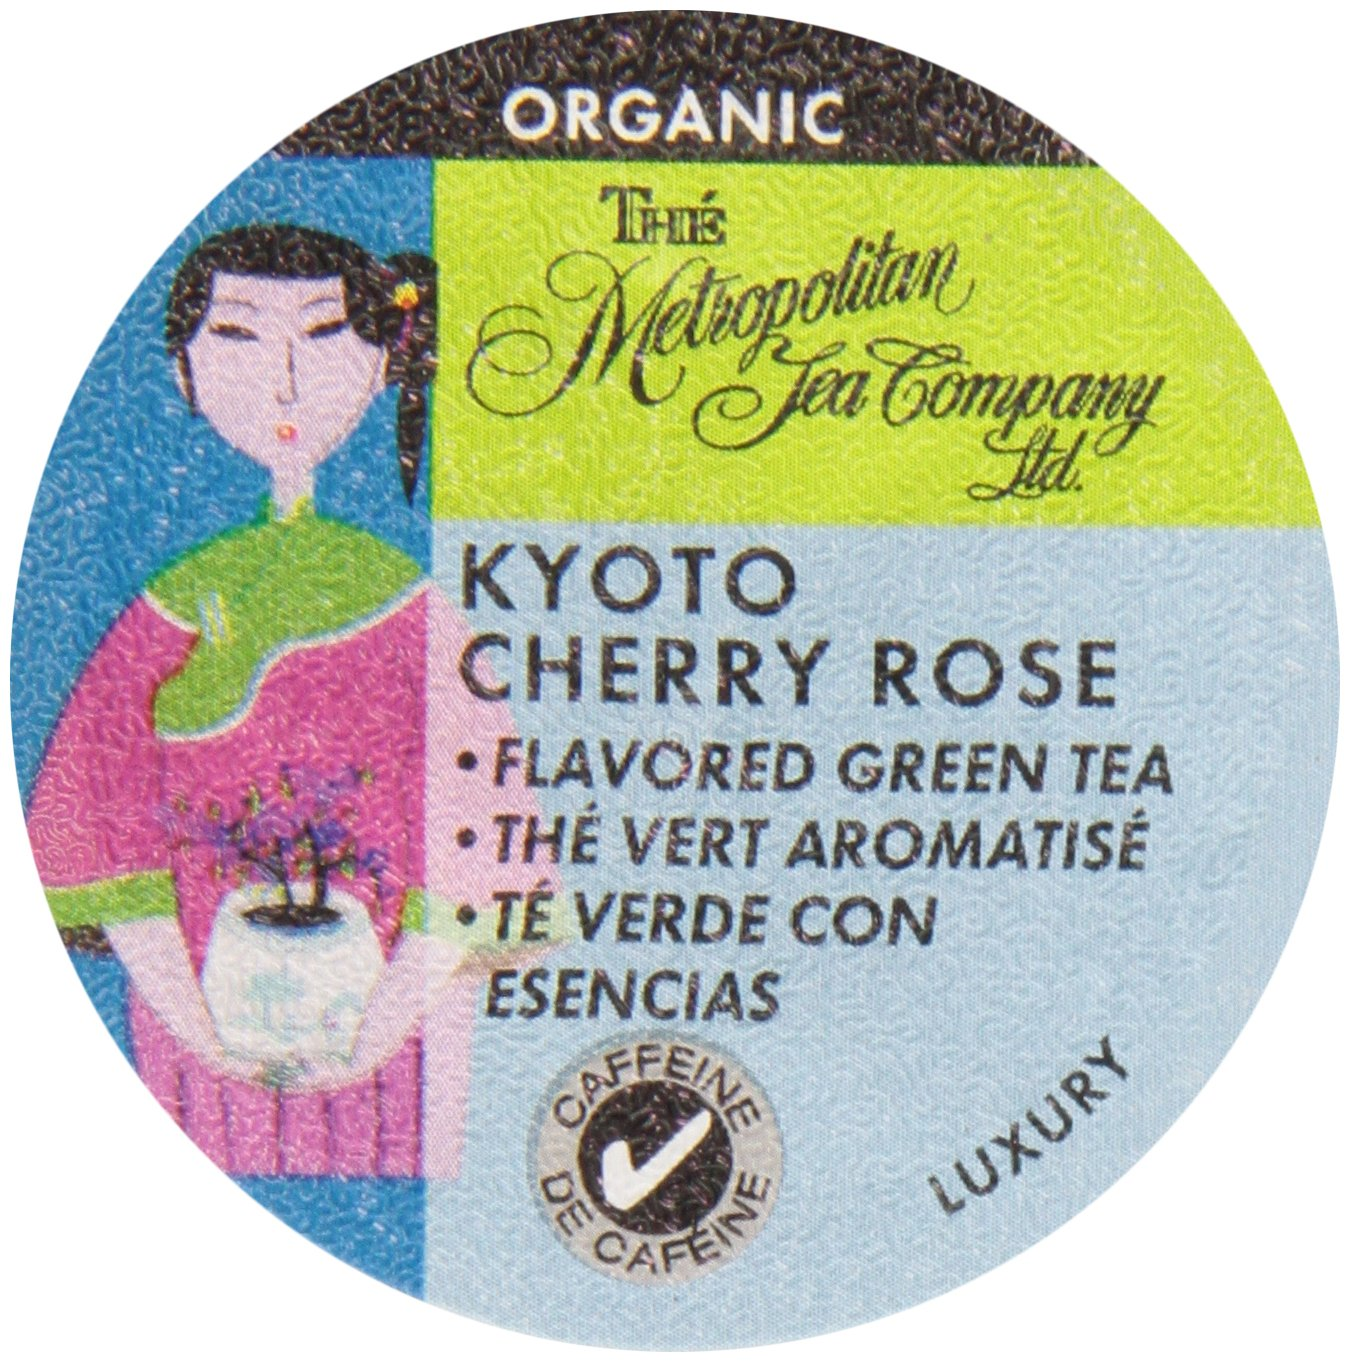 Organic Sencha Kyoto Cherry Rose Festival Green Tea K-Cups - 24 count